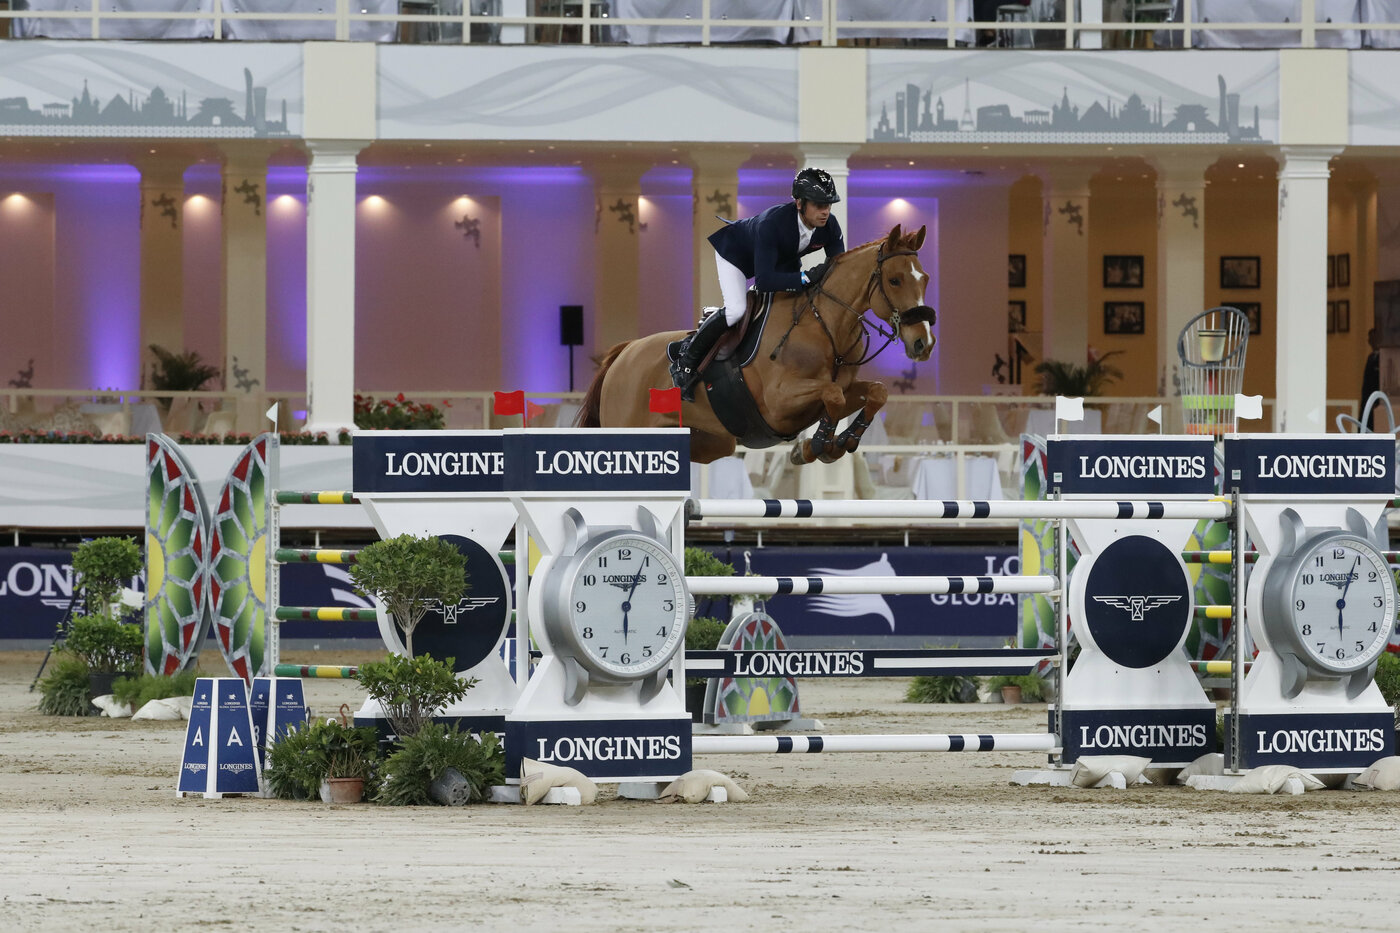 Longines Show Jumping Event: Launch of the brand new season of the Longines Global Champions Tour in Doha 2